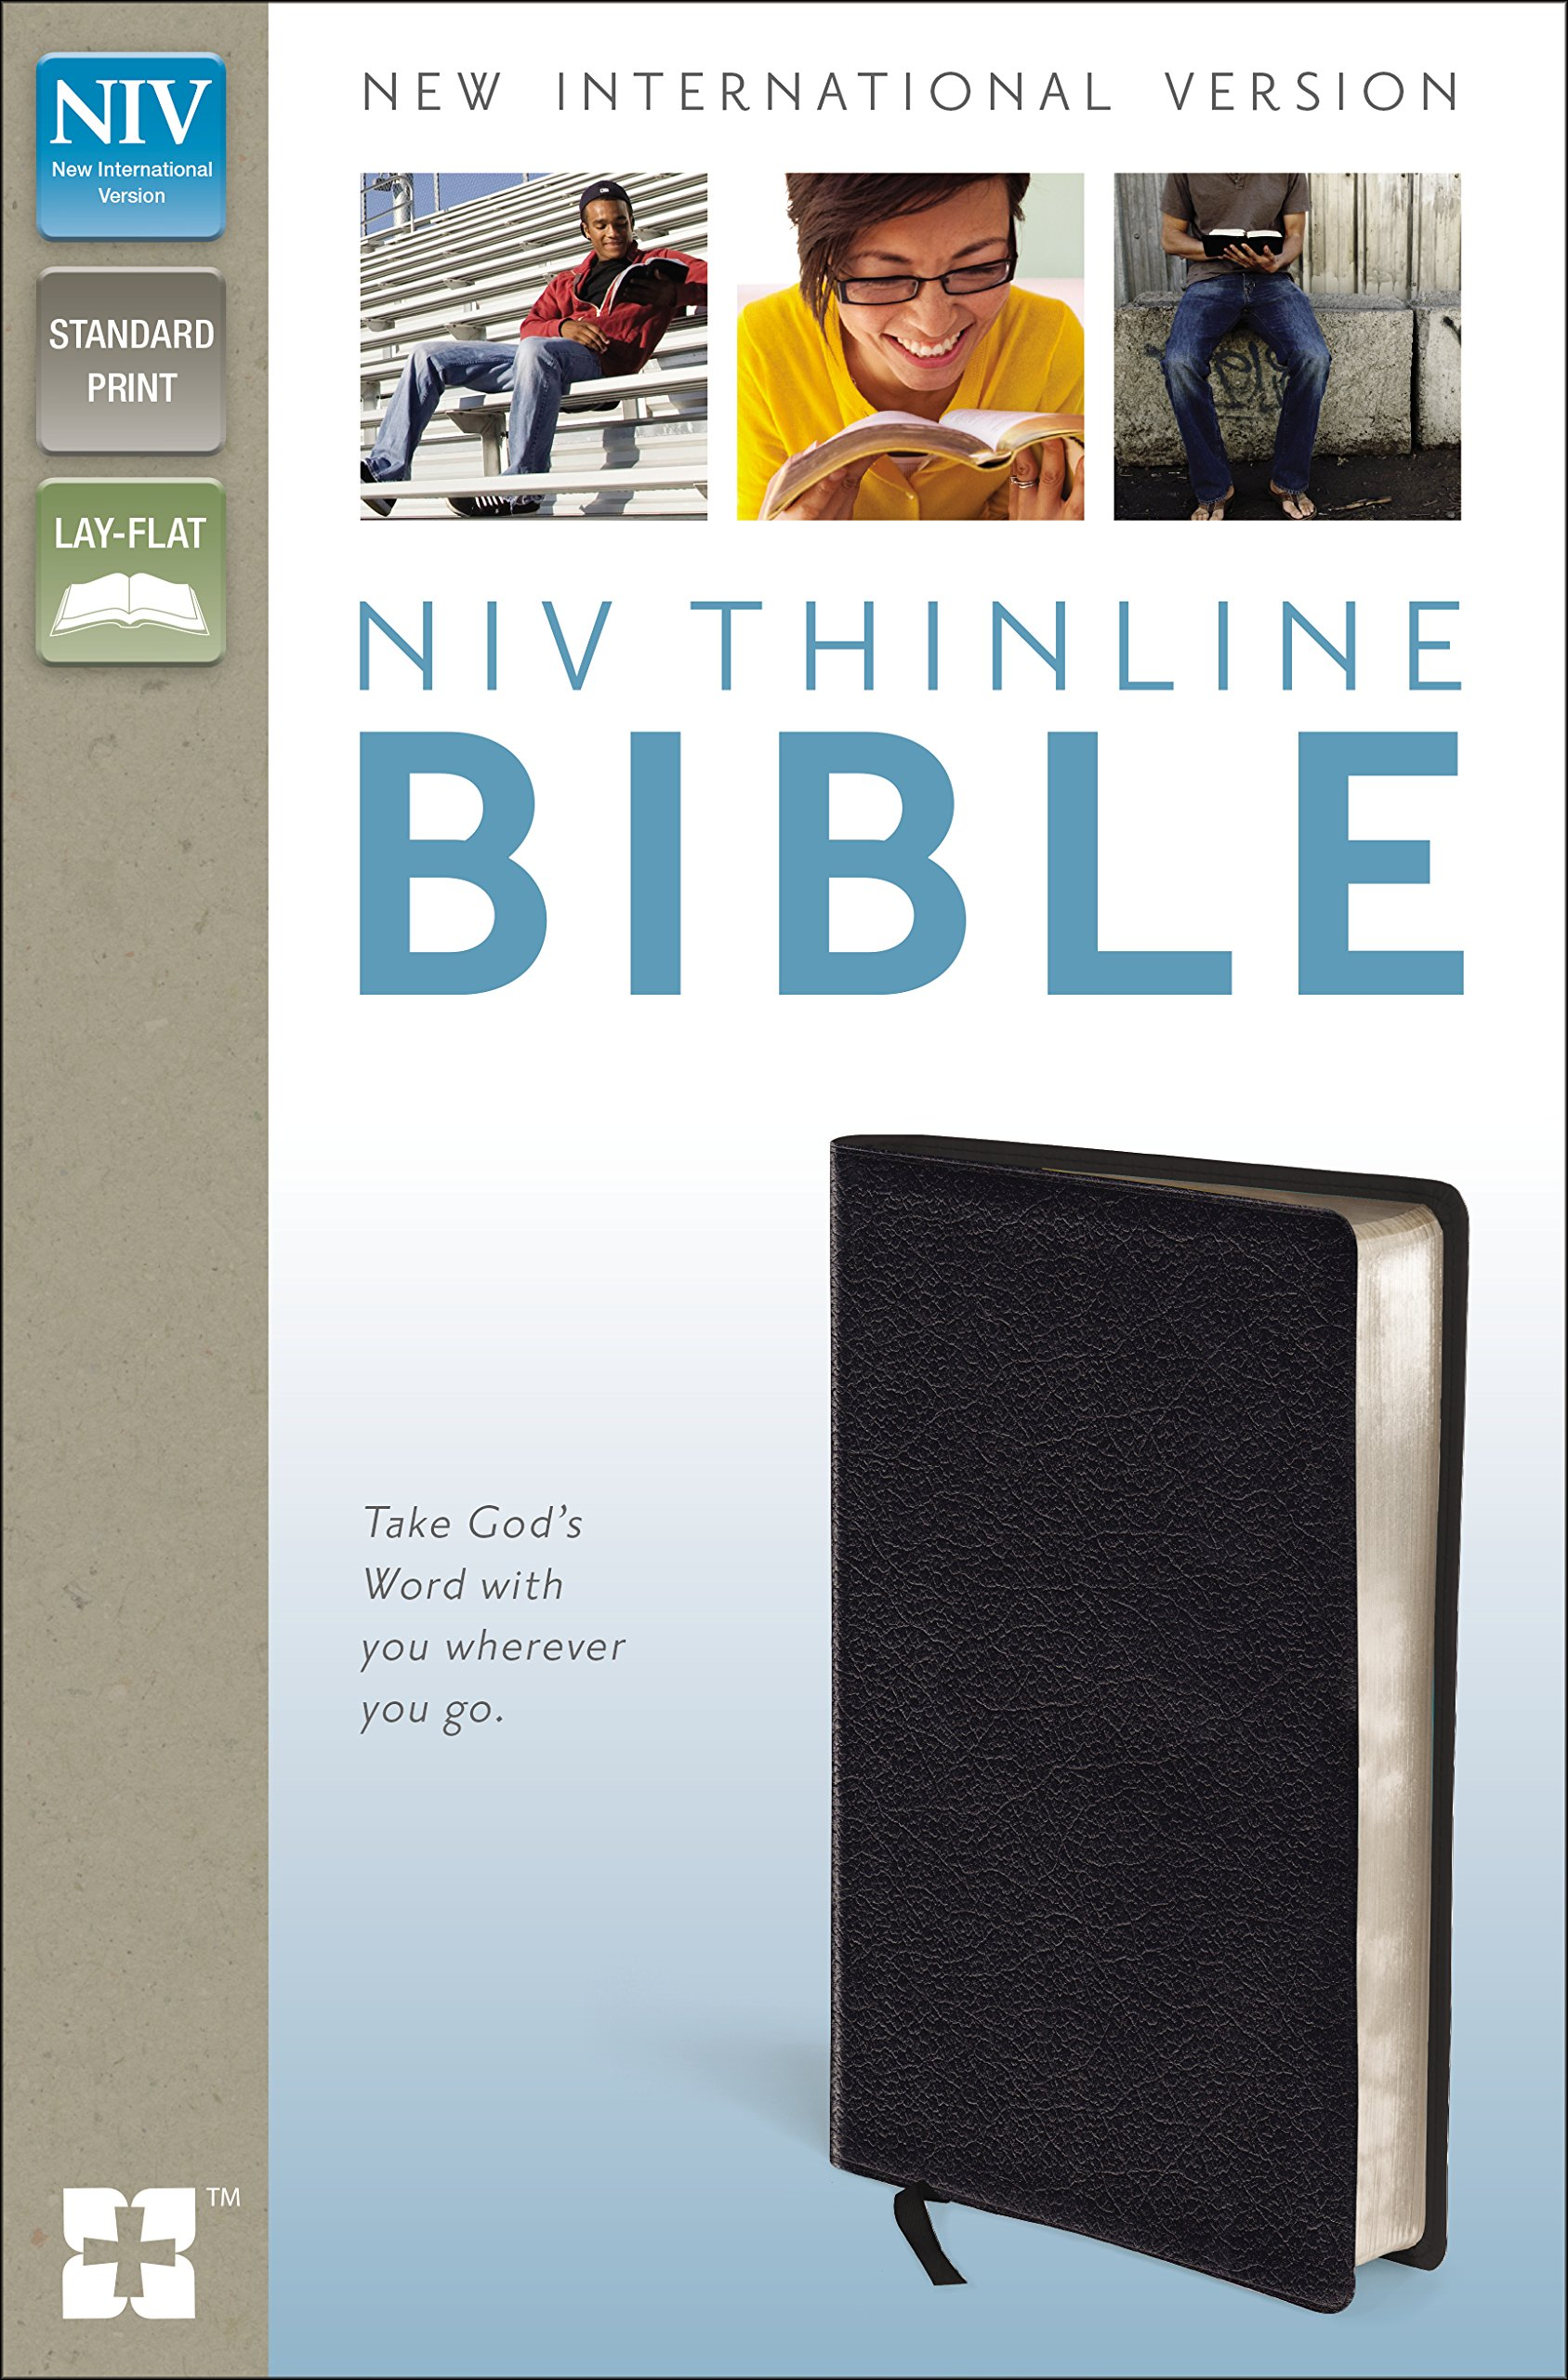 NIV, Thinline Bible, Bonded Leather, Black, Red Letter Edition by HarperCollins Christian Pub.